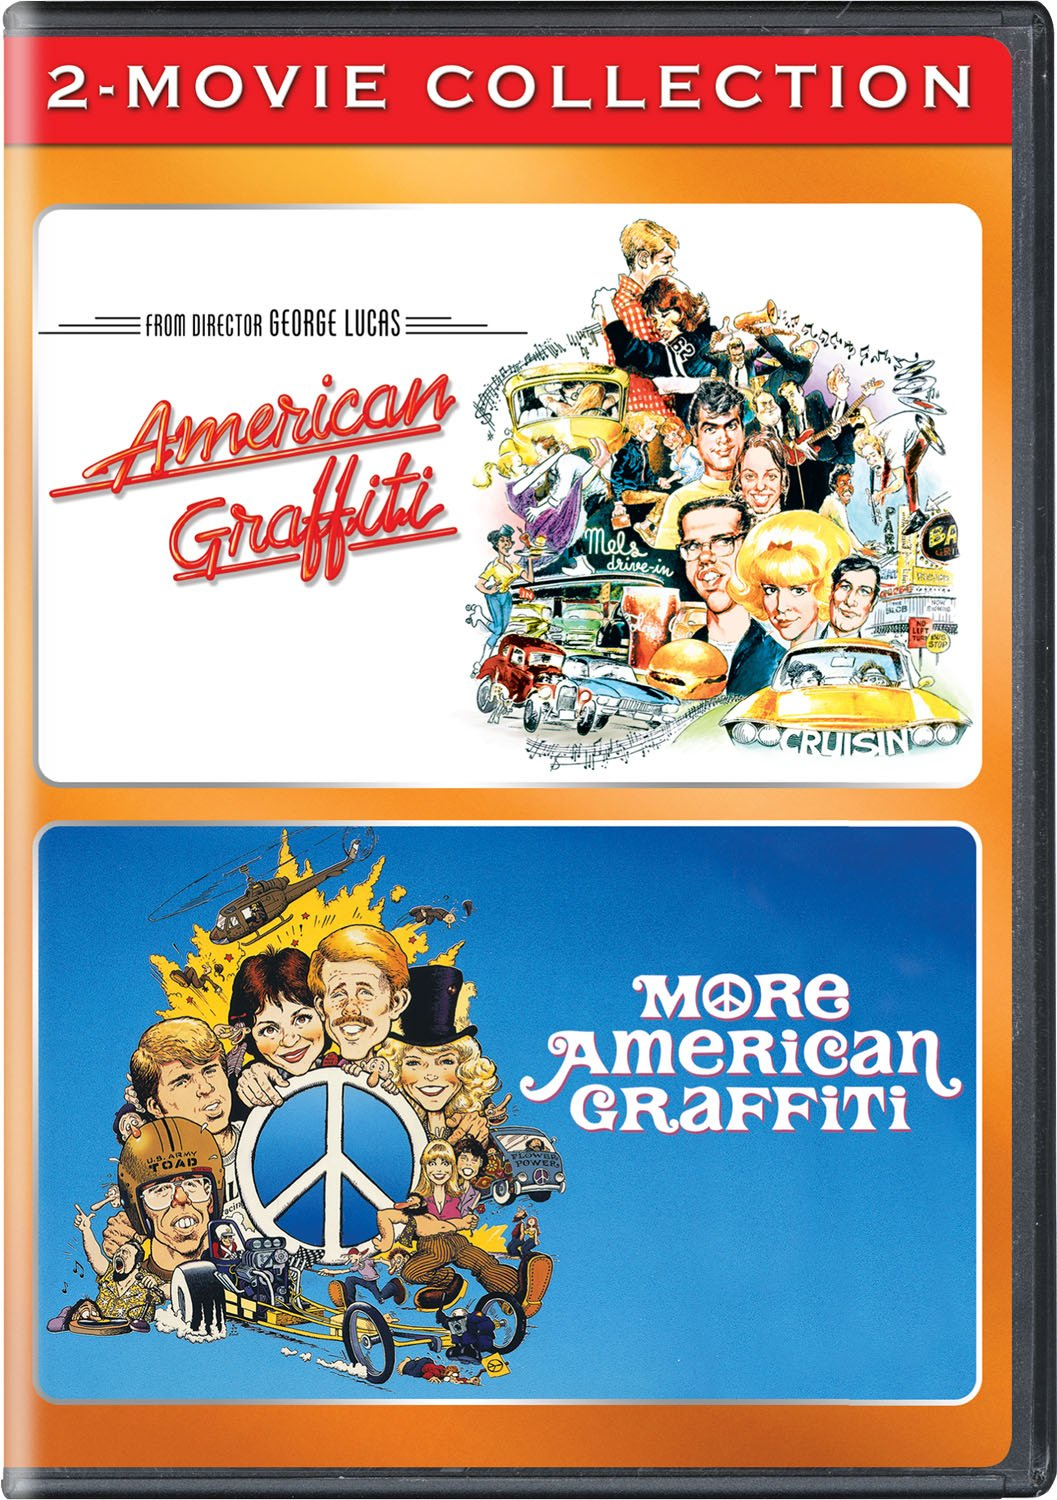 DVD : American Graffiti / More American Graffiti 2-movie Collection (2 Pack, 2PC)